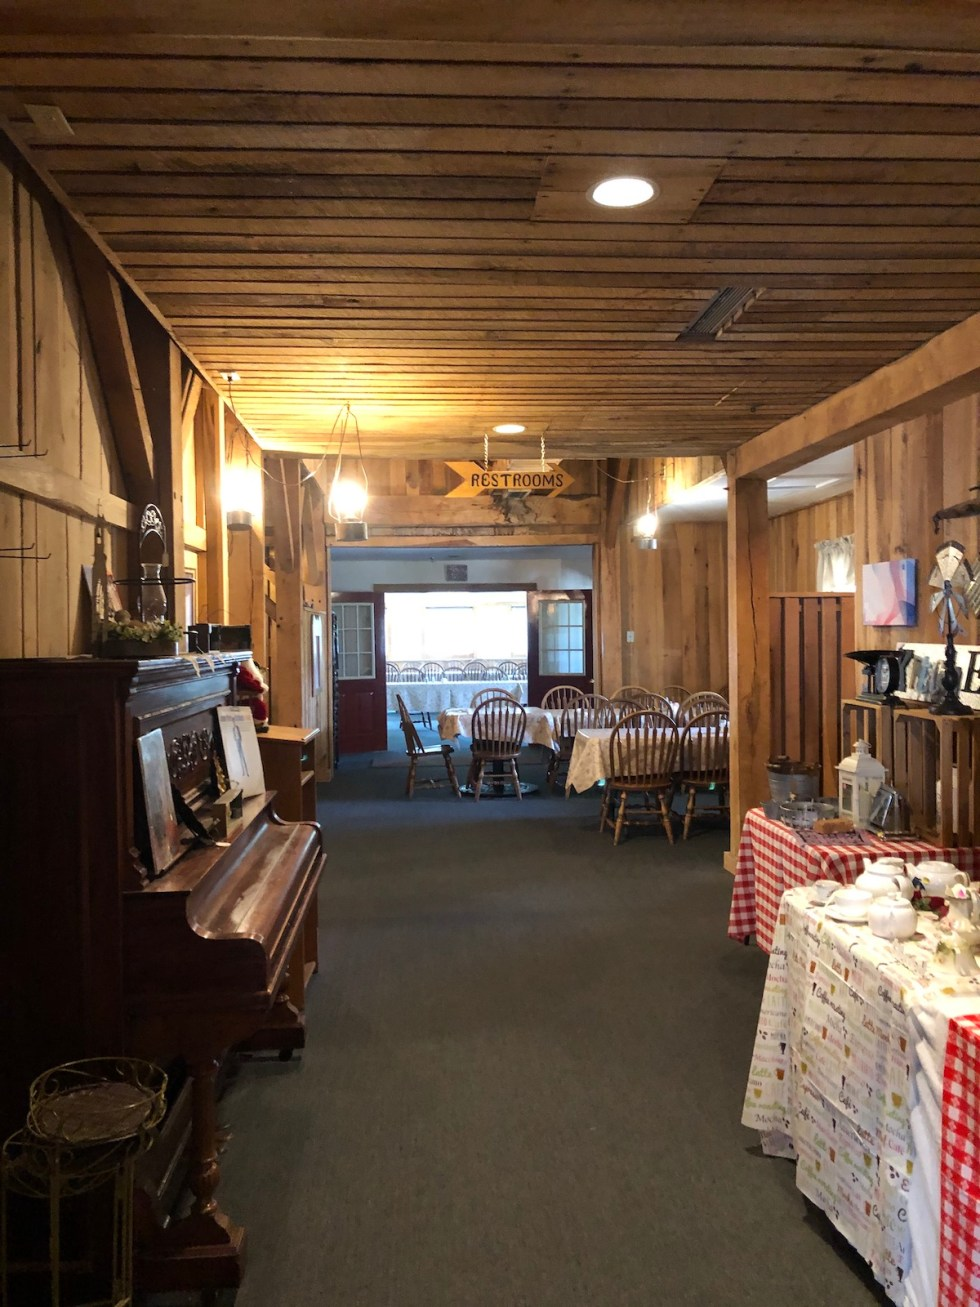 Inside the Gasthof Amish Village Restaurant